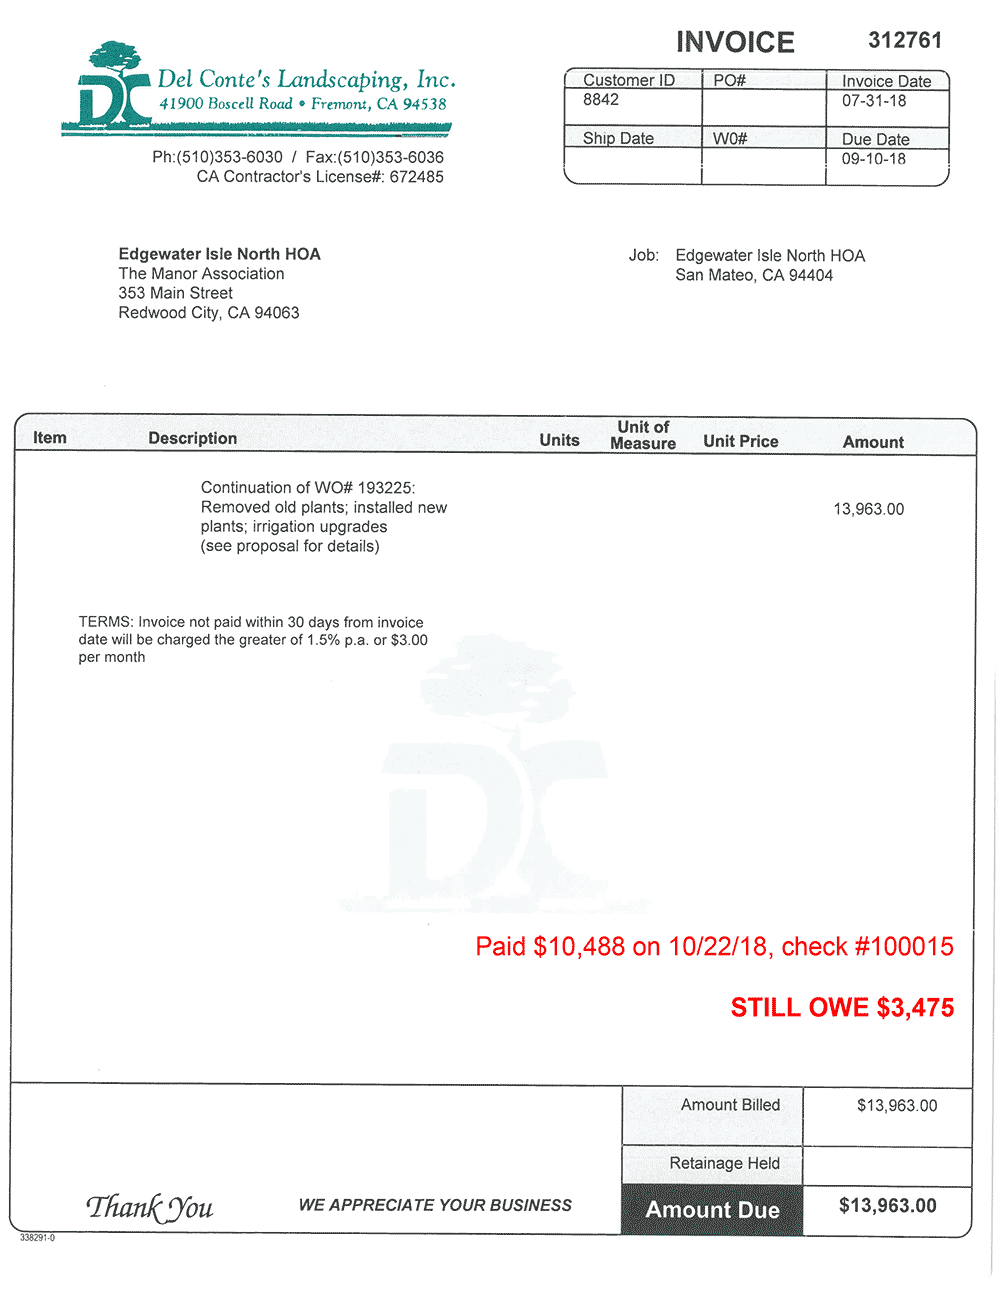 Del Conte's Landscaping has alleged that Edgewater Isle has not paid this invoice, which was due on September 10, 2018